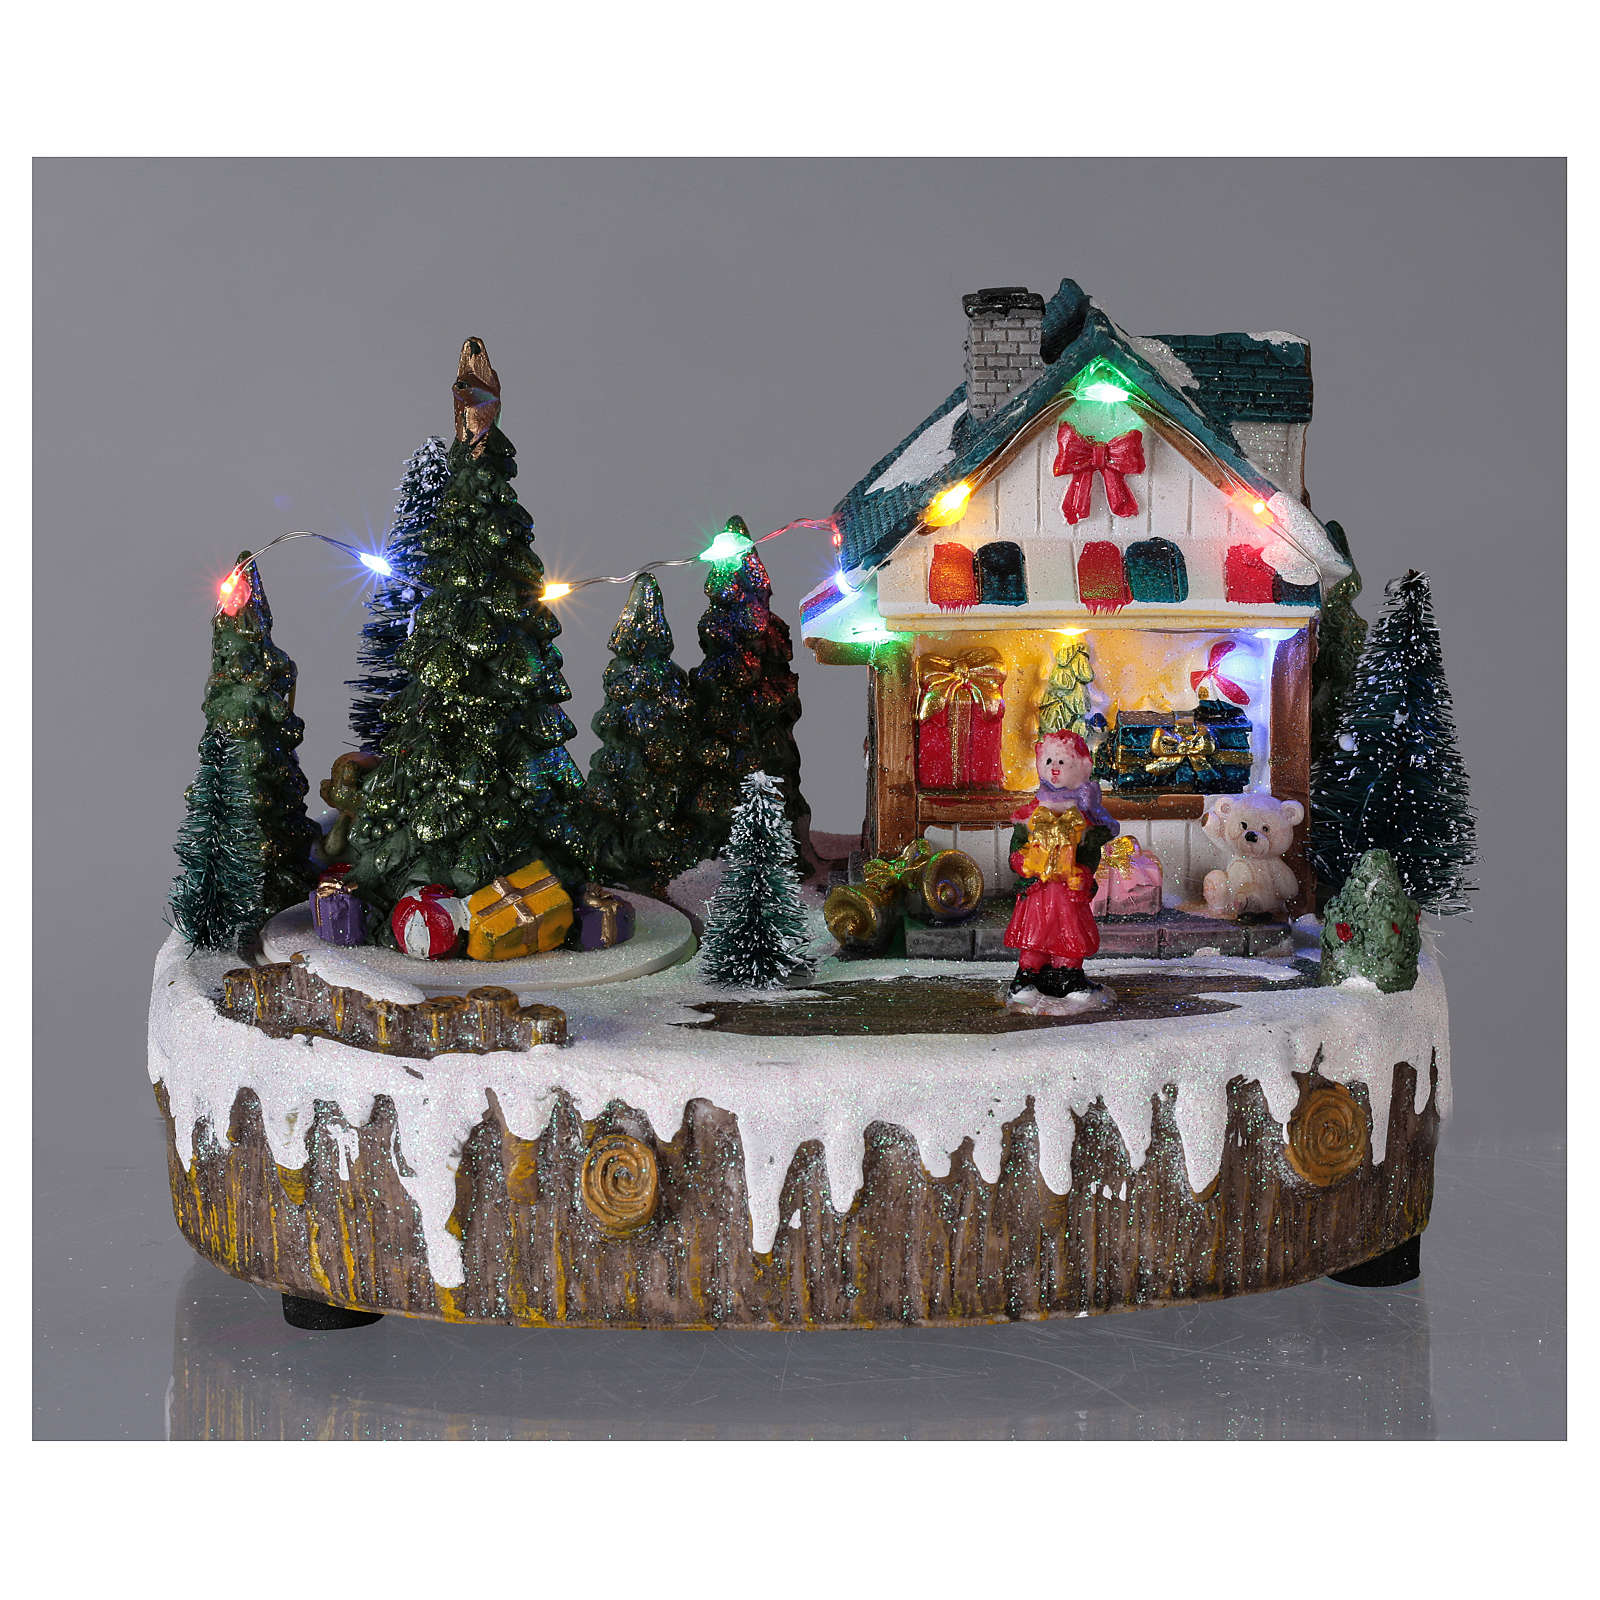 Christmas Village.Christmas Village Set With Moving Shop Lighted Tree 15x20x10 Cm